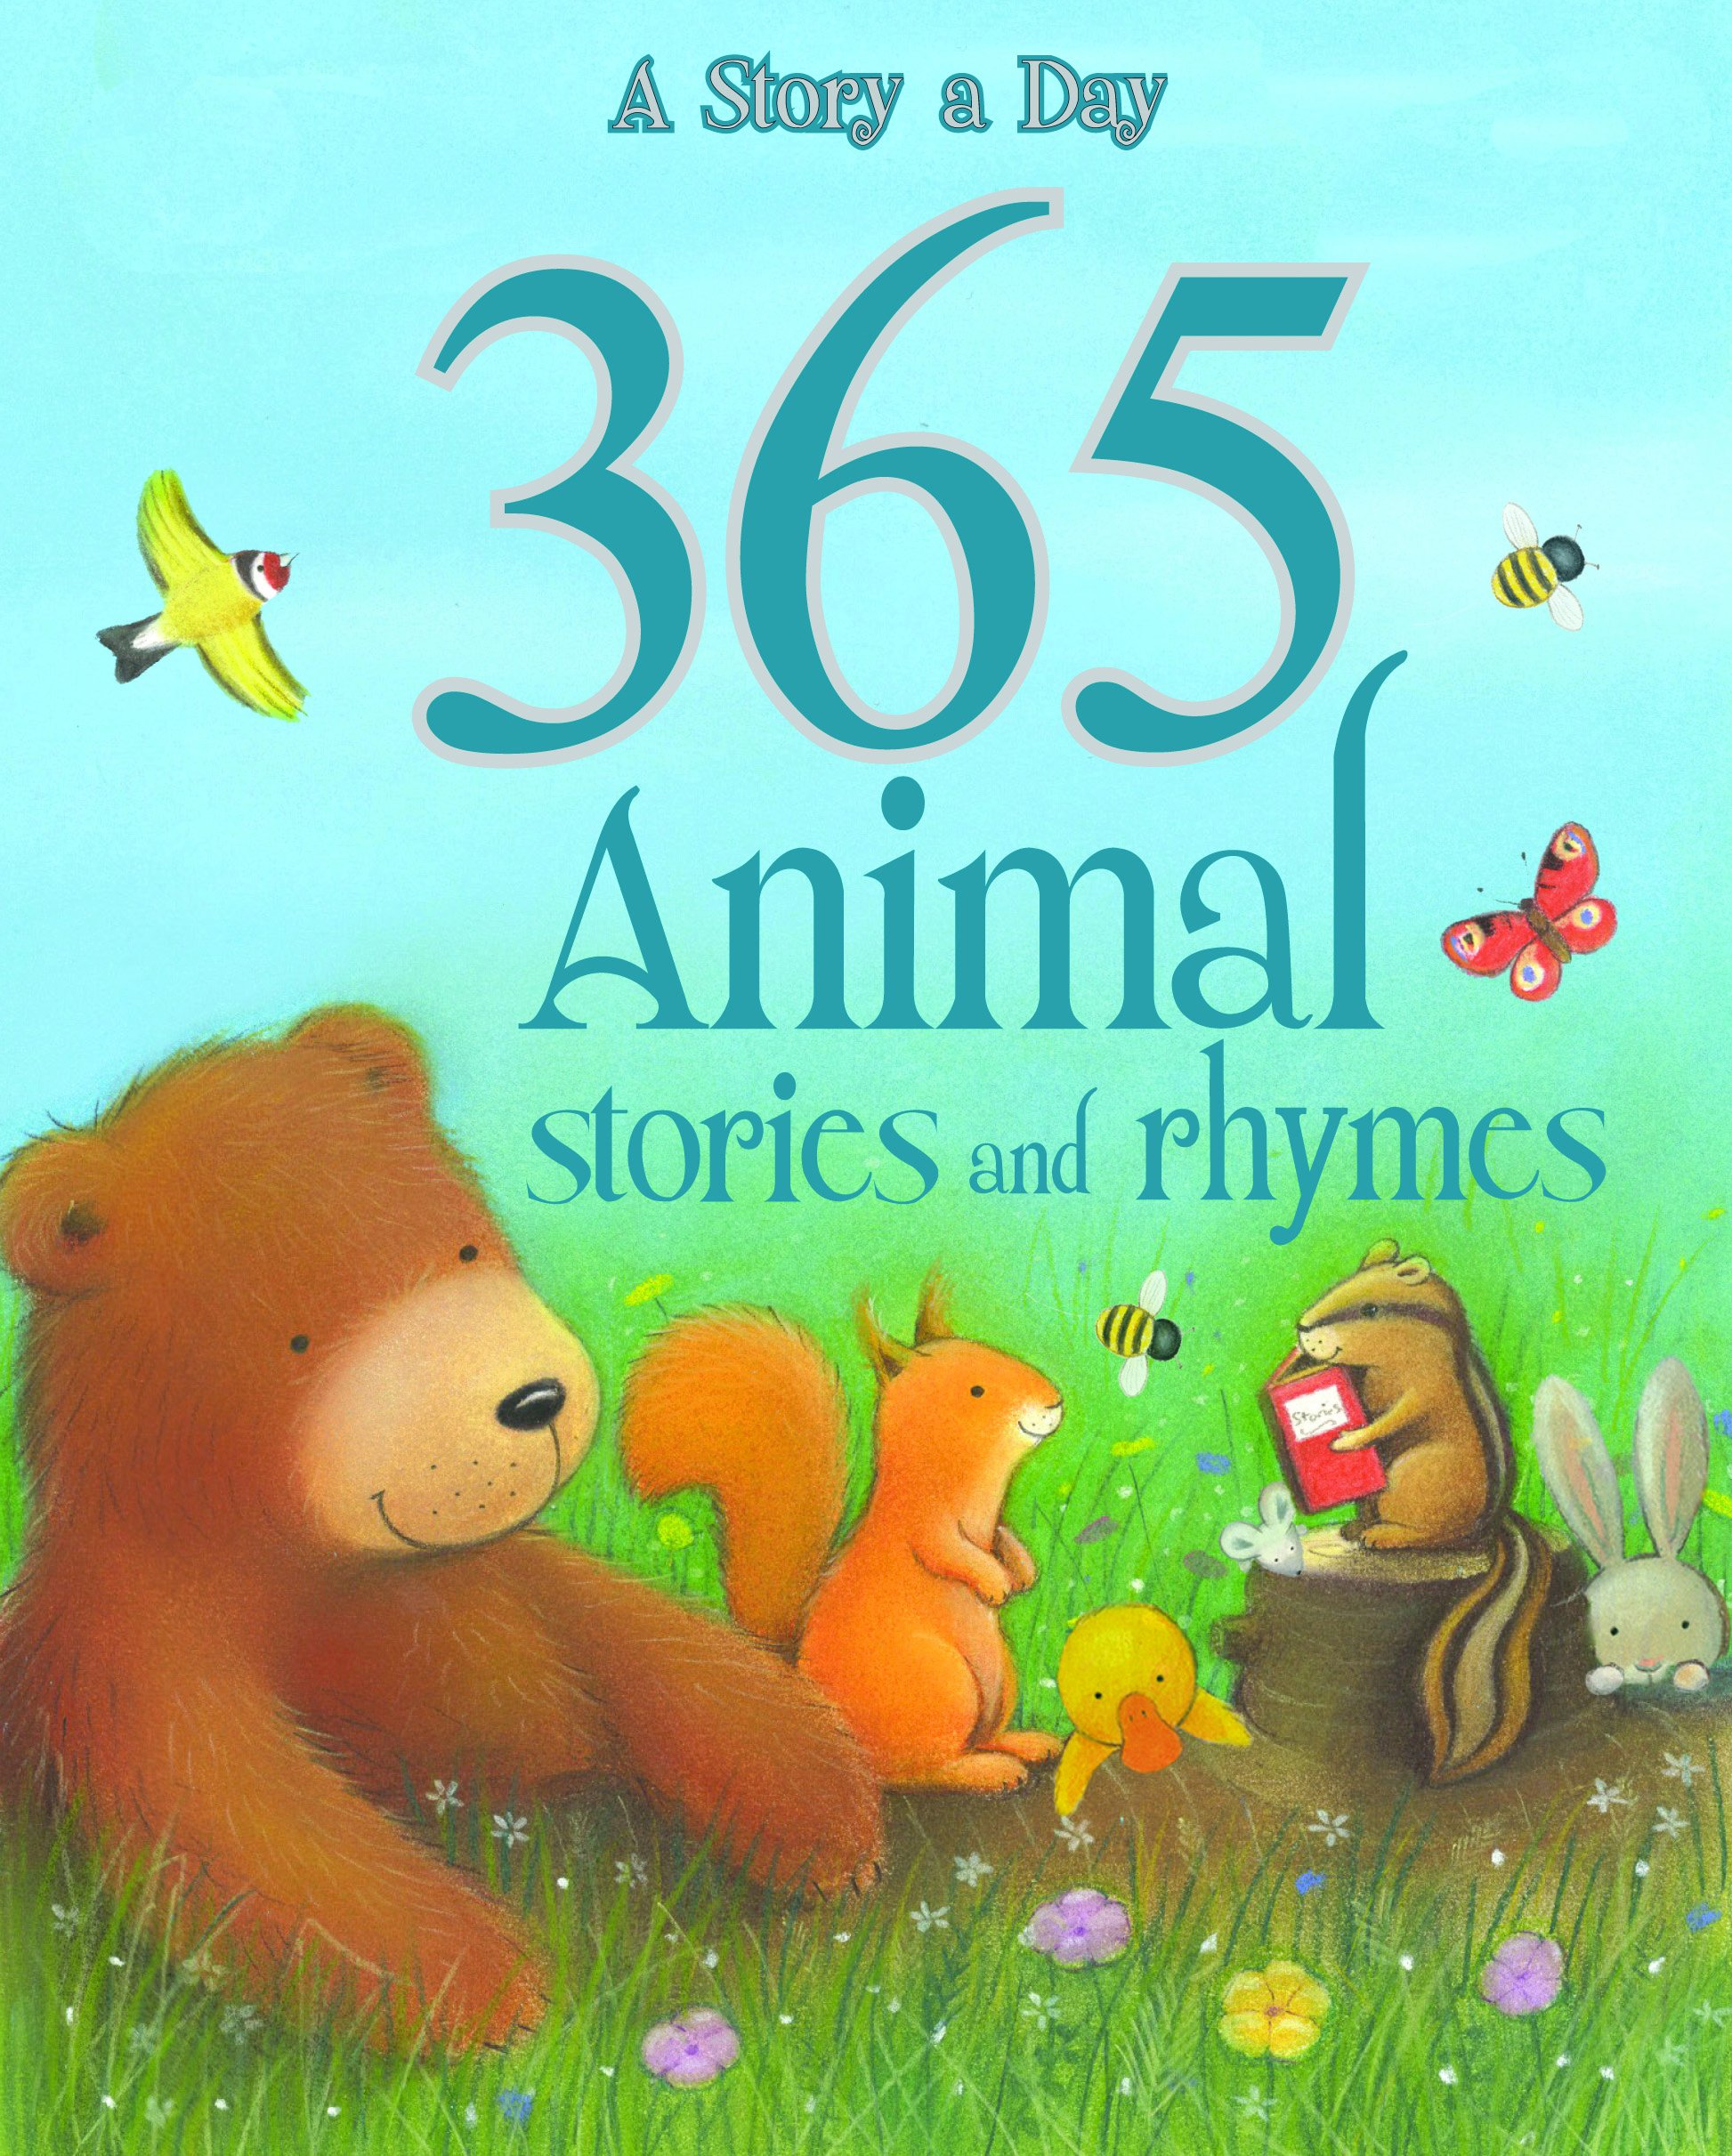 Uncategorized Animal Stories 365 animal stories and rhymes parragon 9781445445496 amazon com books